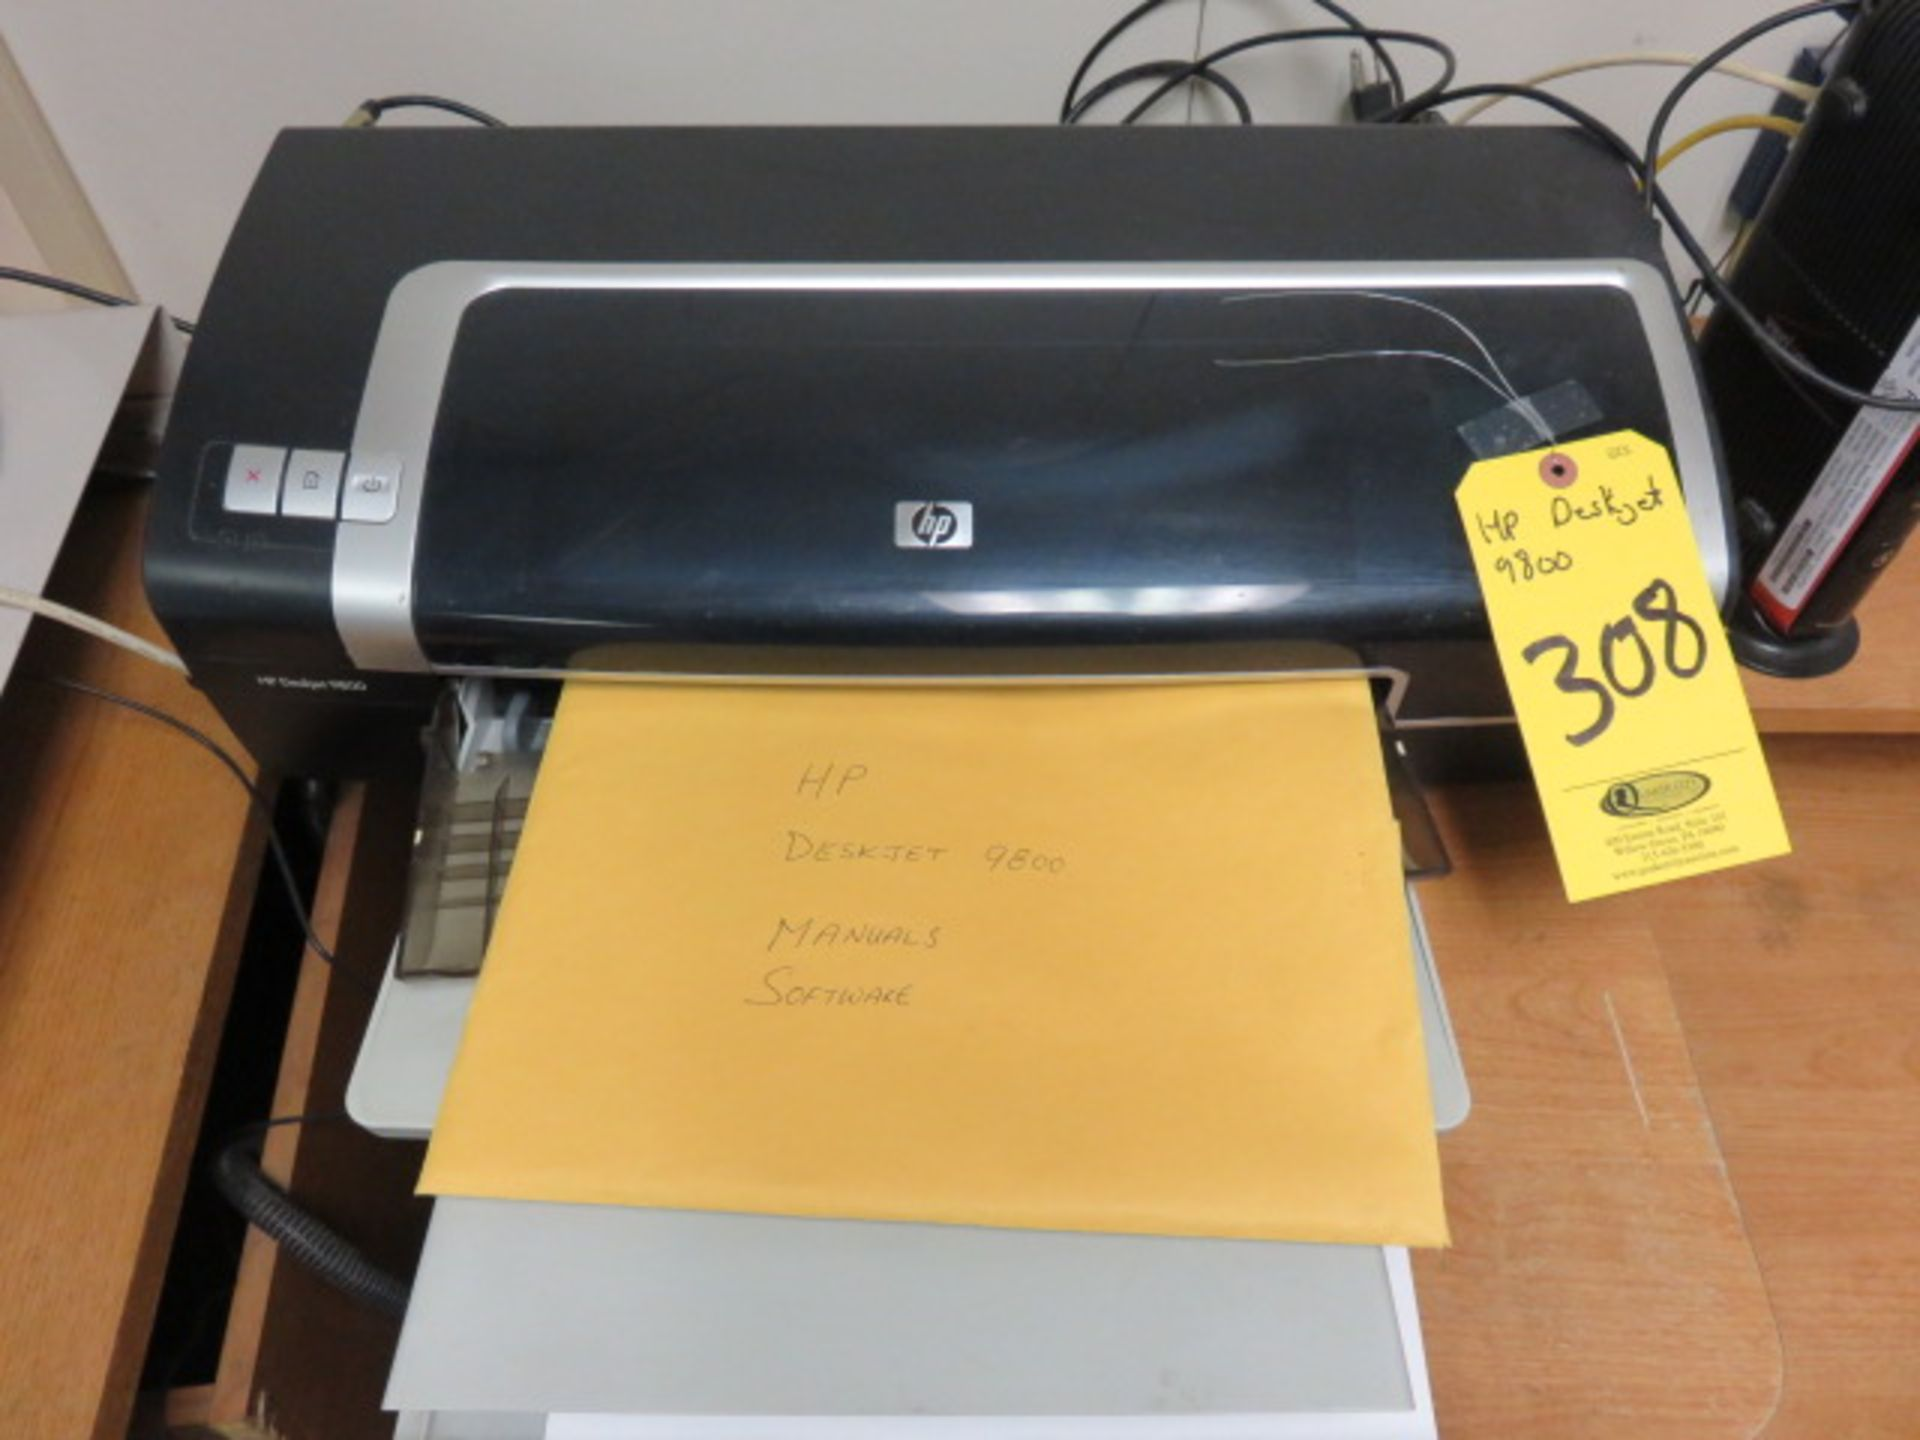 HP DESKJET 9800 WIDE FORMAT PRINTER